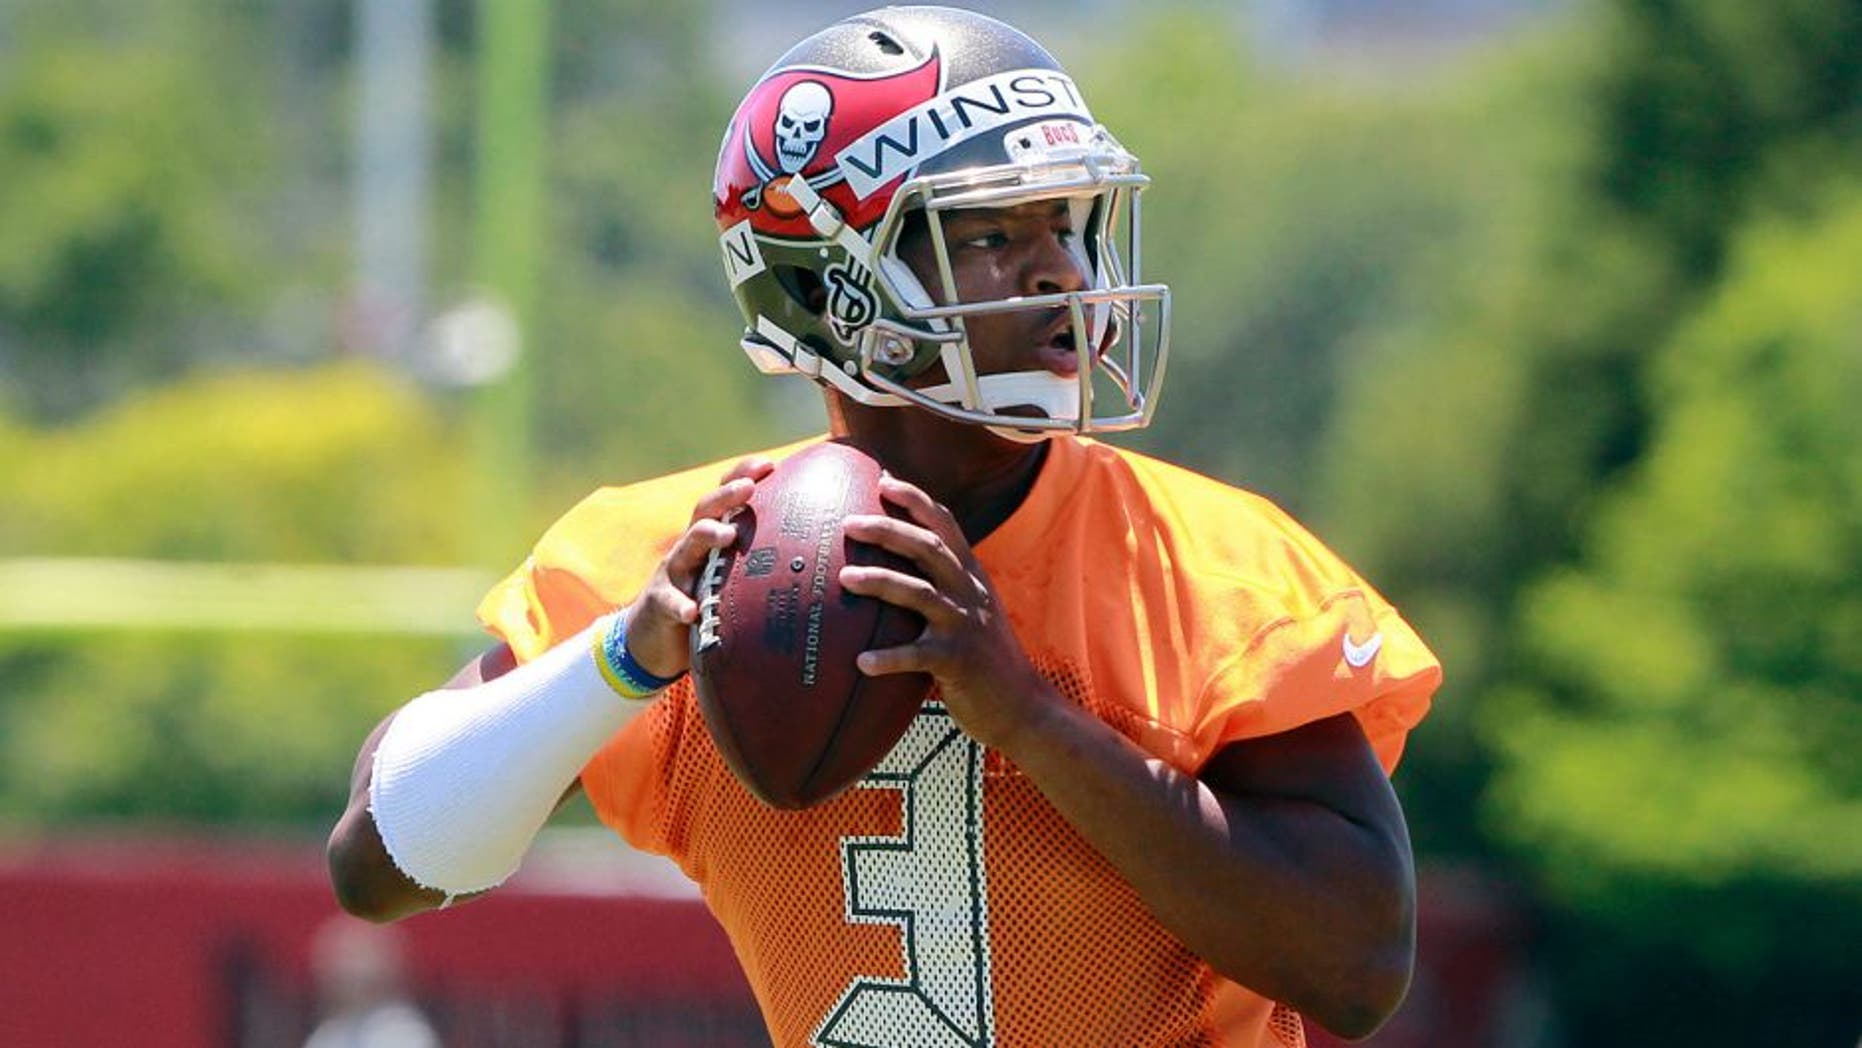 May 8, 2015; Tampa, FL, USA; Tampa Bay Buccaneers quarterback Jameis Winston (3) works out for rookie mini camp at One Buc Place. Mandatory Credit: Kim Klement-USA TODAY Sports